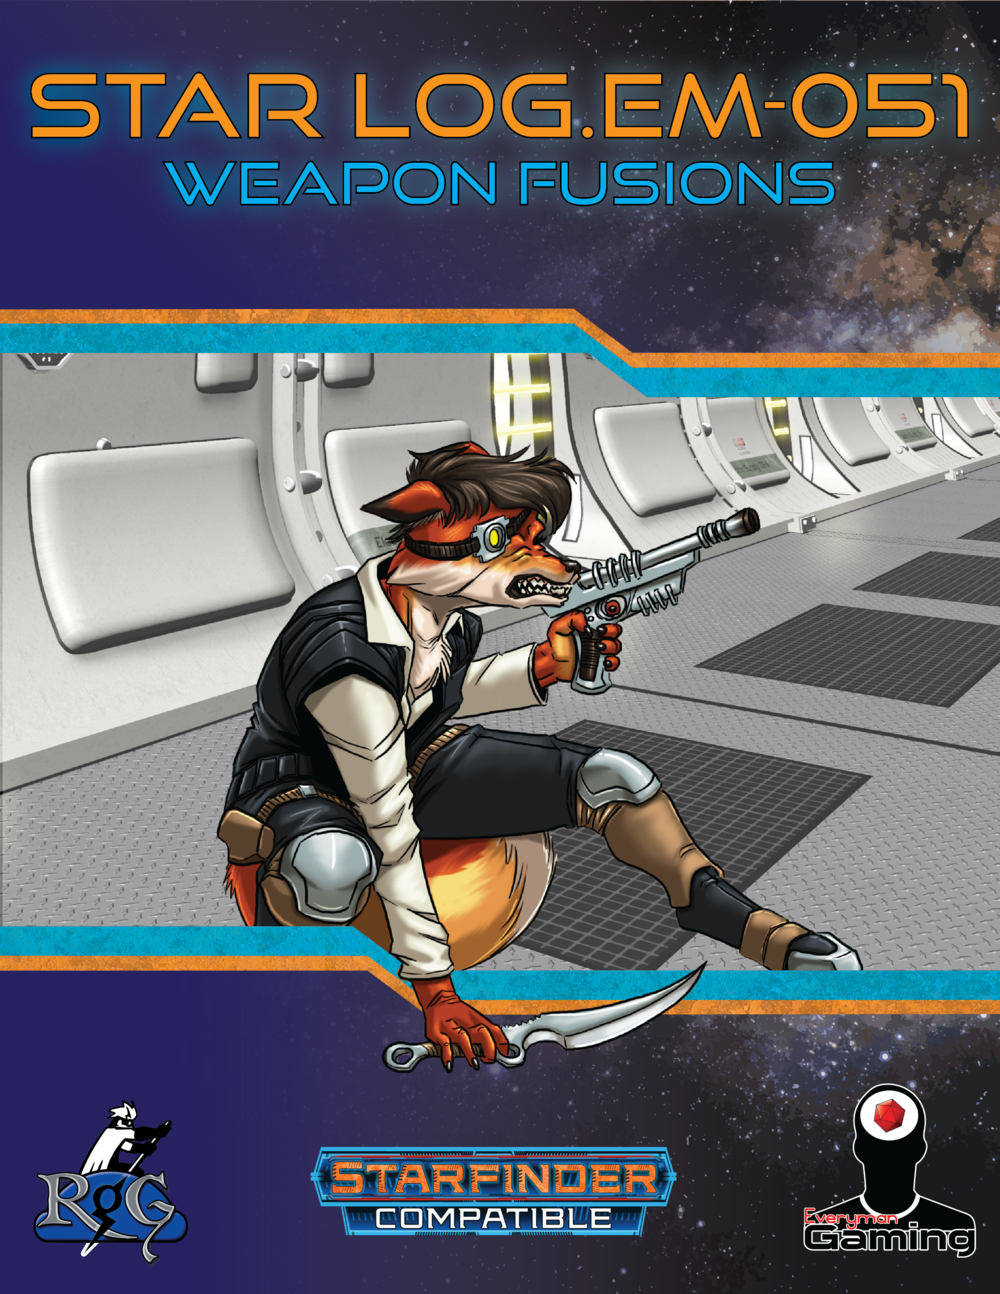 SF051 Weapon Fusions.png